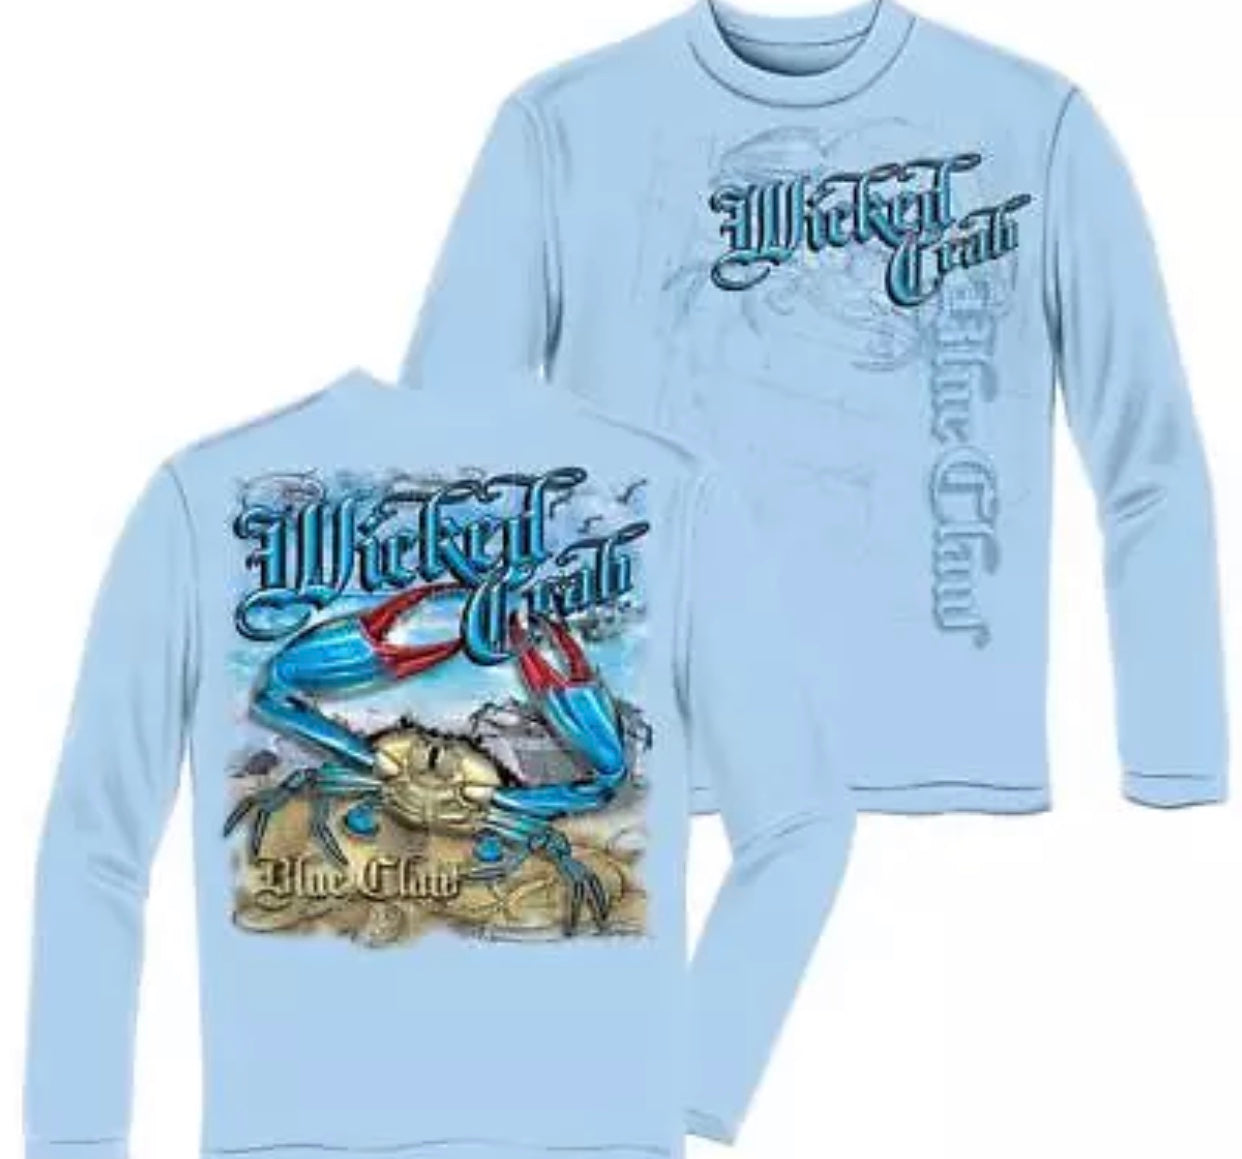 Crab Long Sleeve T Shirt - The Wall Kids, Inc.